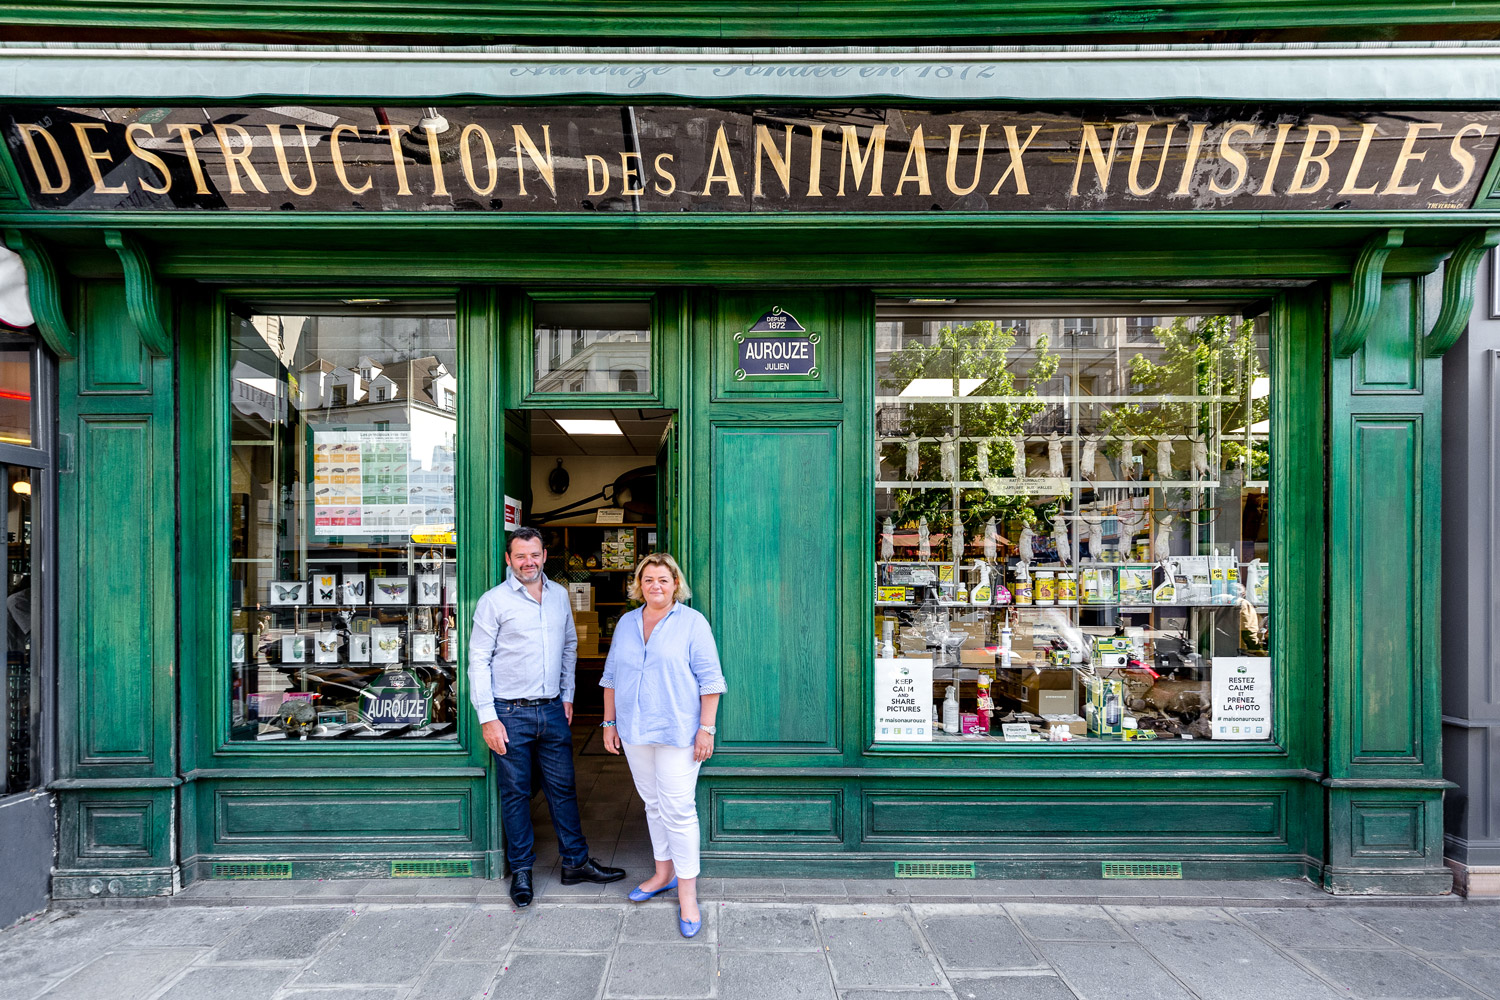 Siblings Julien (left) and Cécile Aurouze are not horrified by the rat parade in their shop's windows